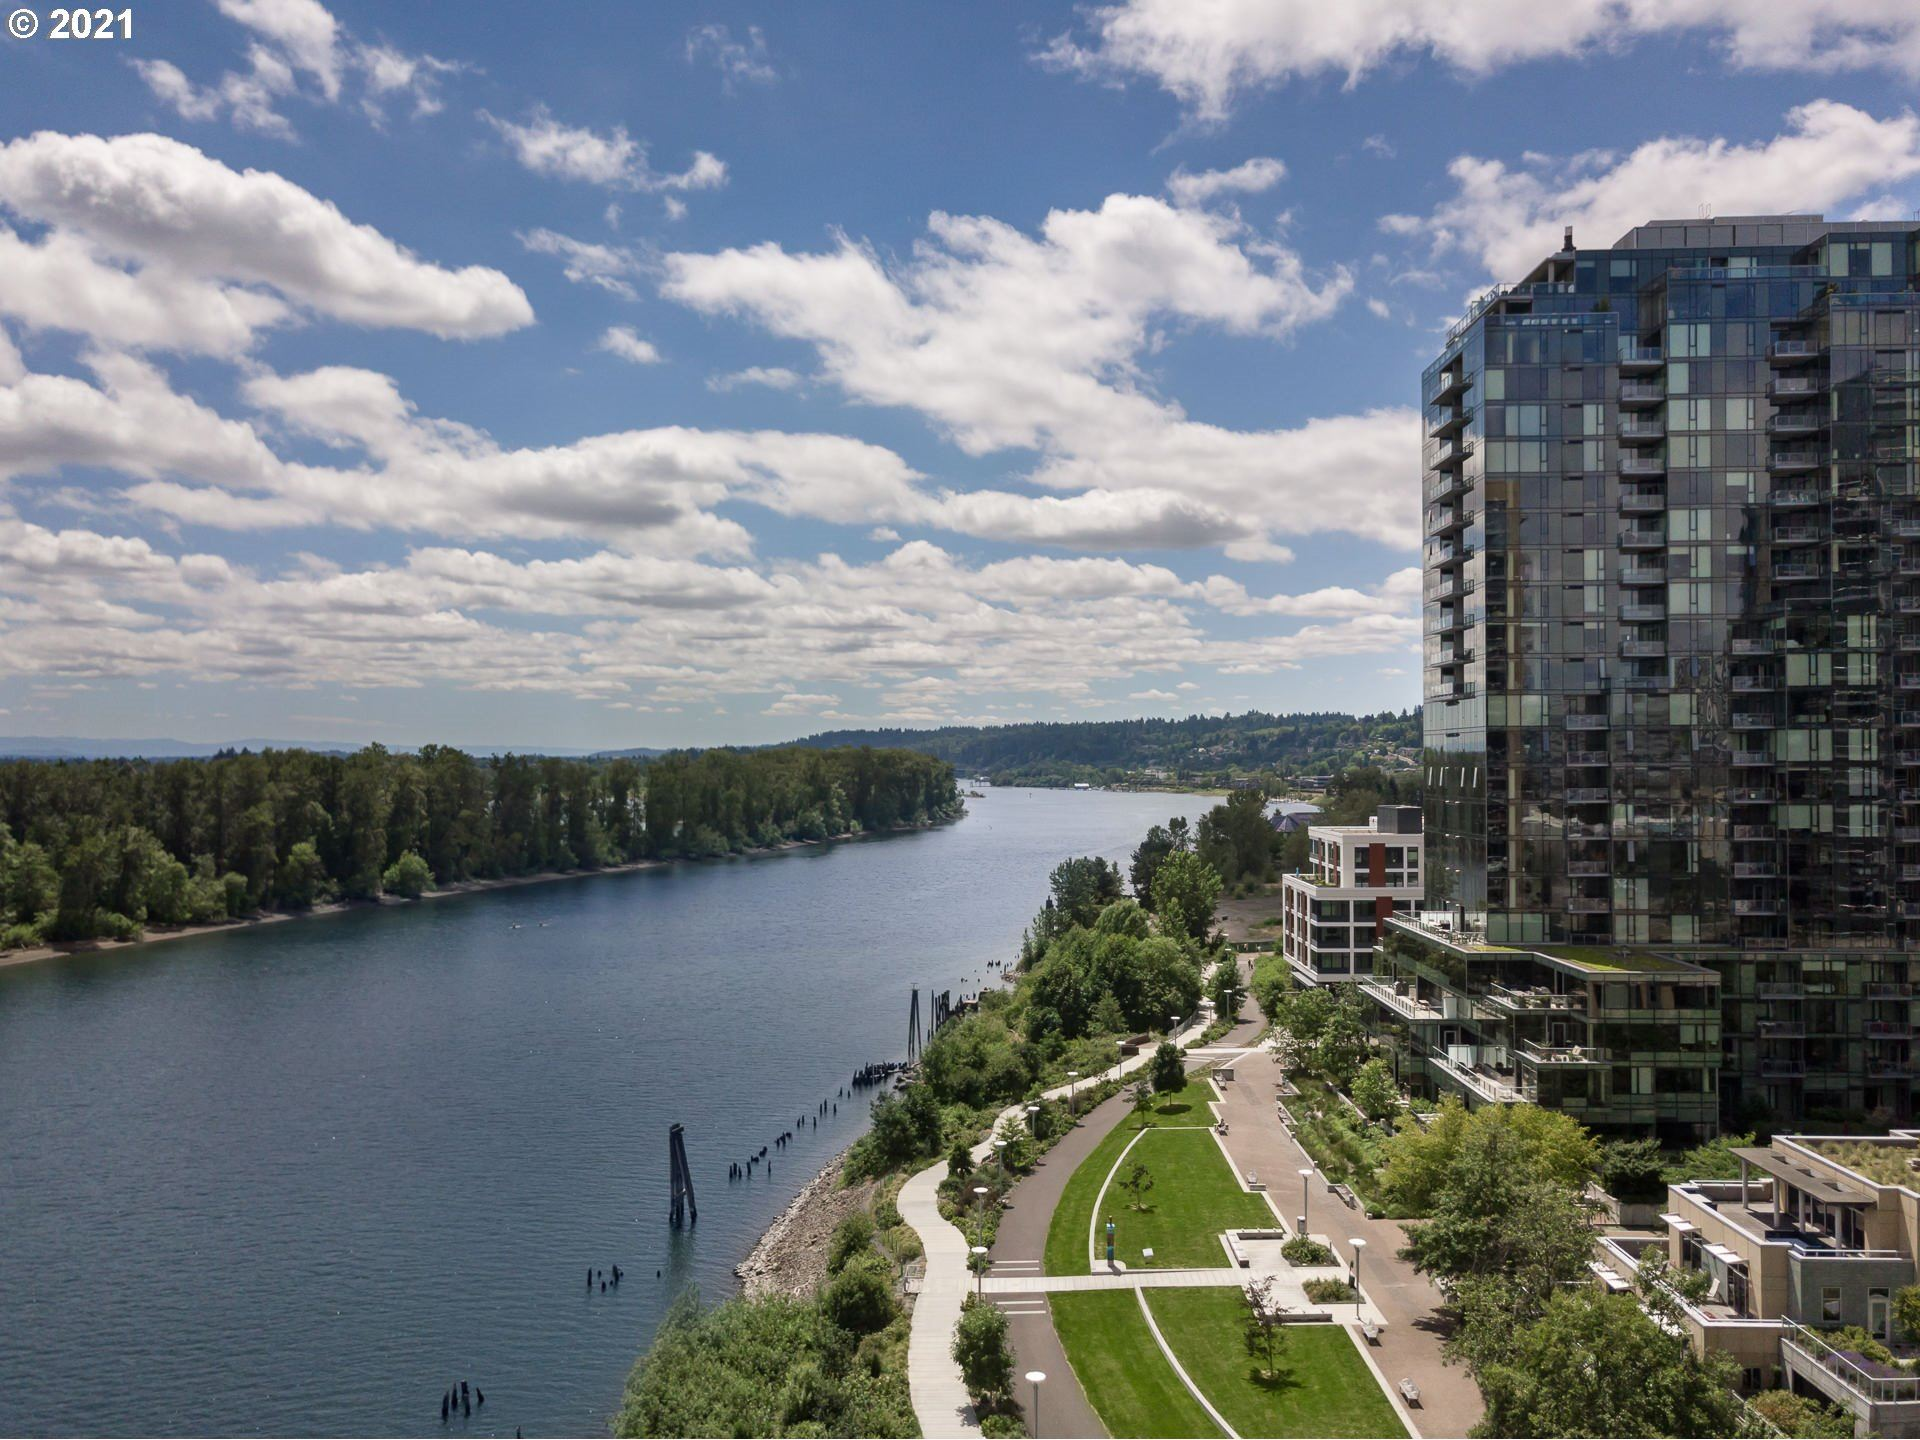 841 S GAINES ST #912, Portland, OR 97239 - MLS#: 21658654